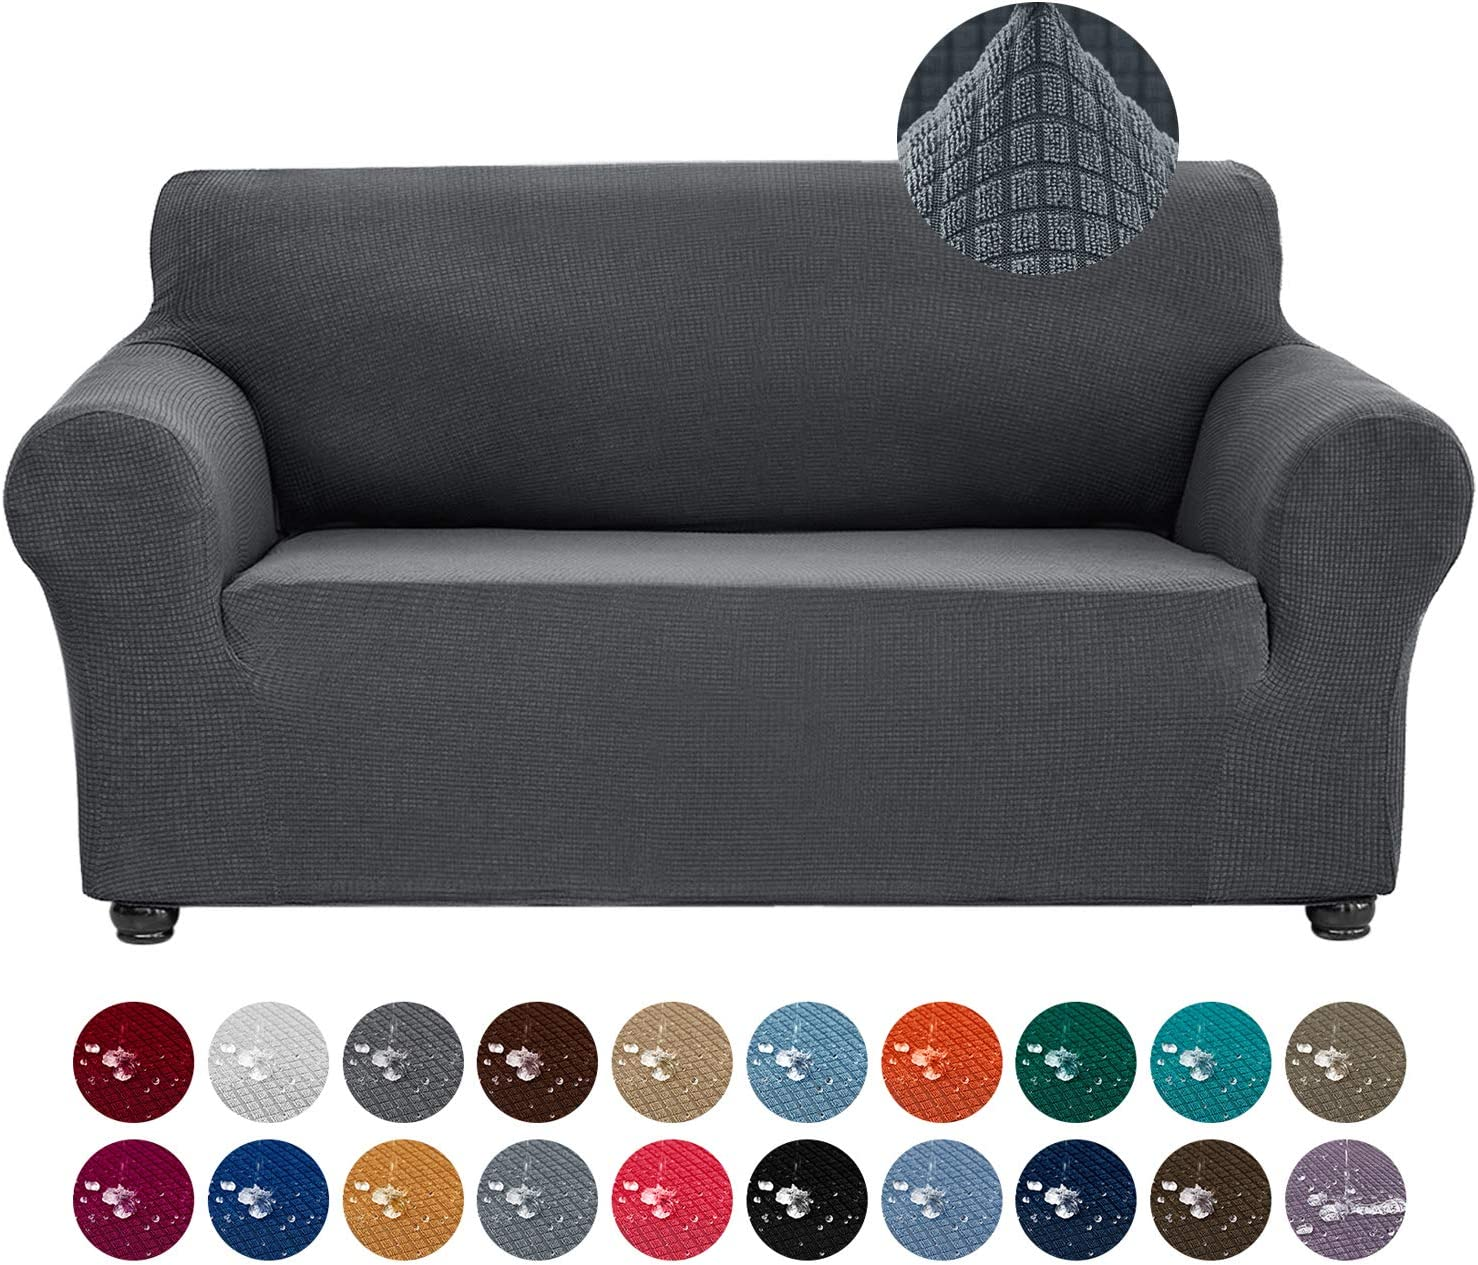 Joccun Stretch Loveseat Couch Cover Slipcover, 1-Piece Water Repellent Sofa Cover for 2 Cushion Couch Spandex Jacquard Washable Furniture Protector Cover for Living Room,Kids,Pets(Loveseat,Gray)